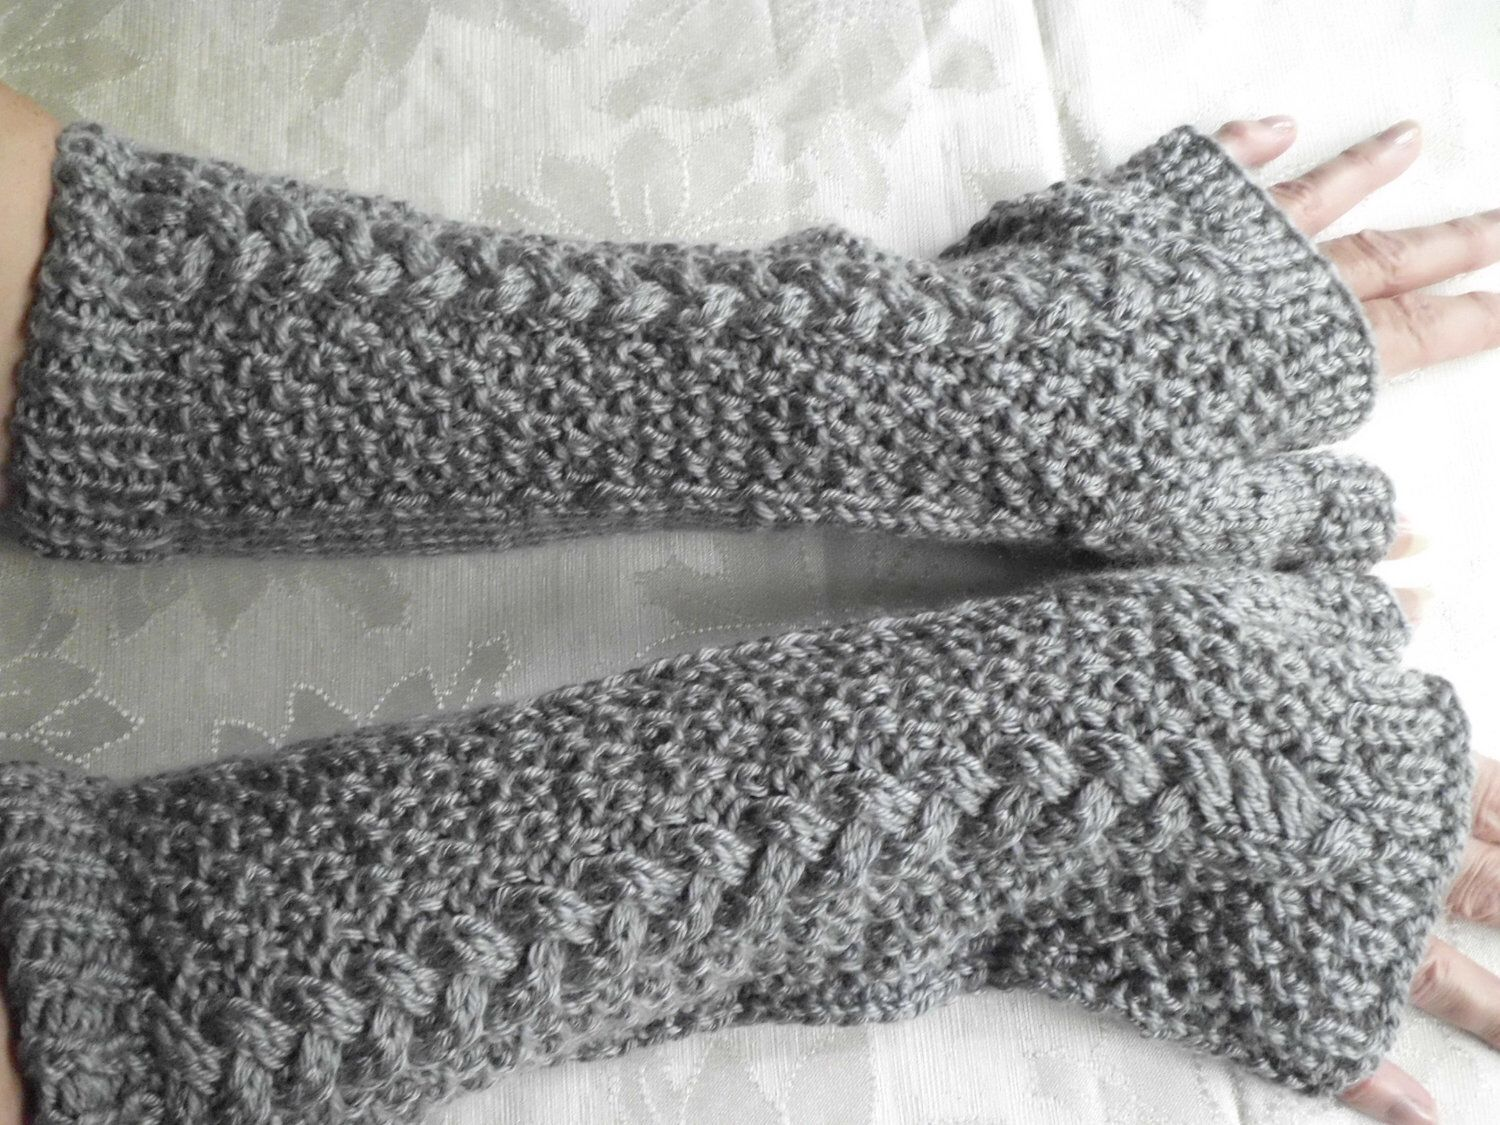 Hand Knit Fingerless Gloves in Soft Grey with Cable Stitch ...